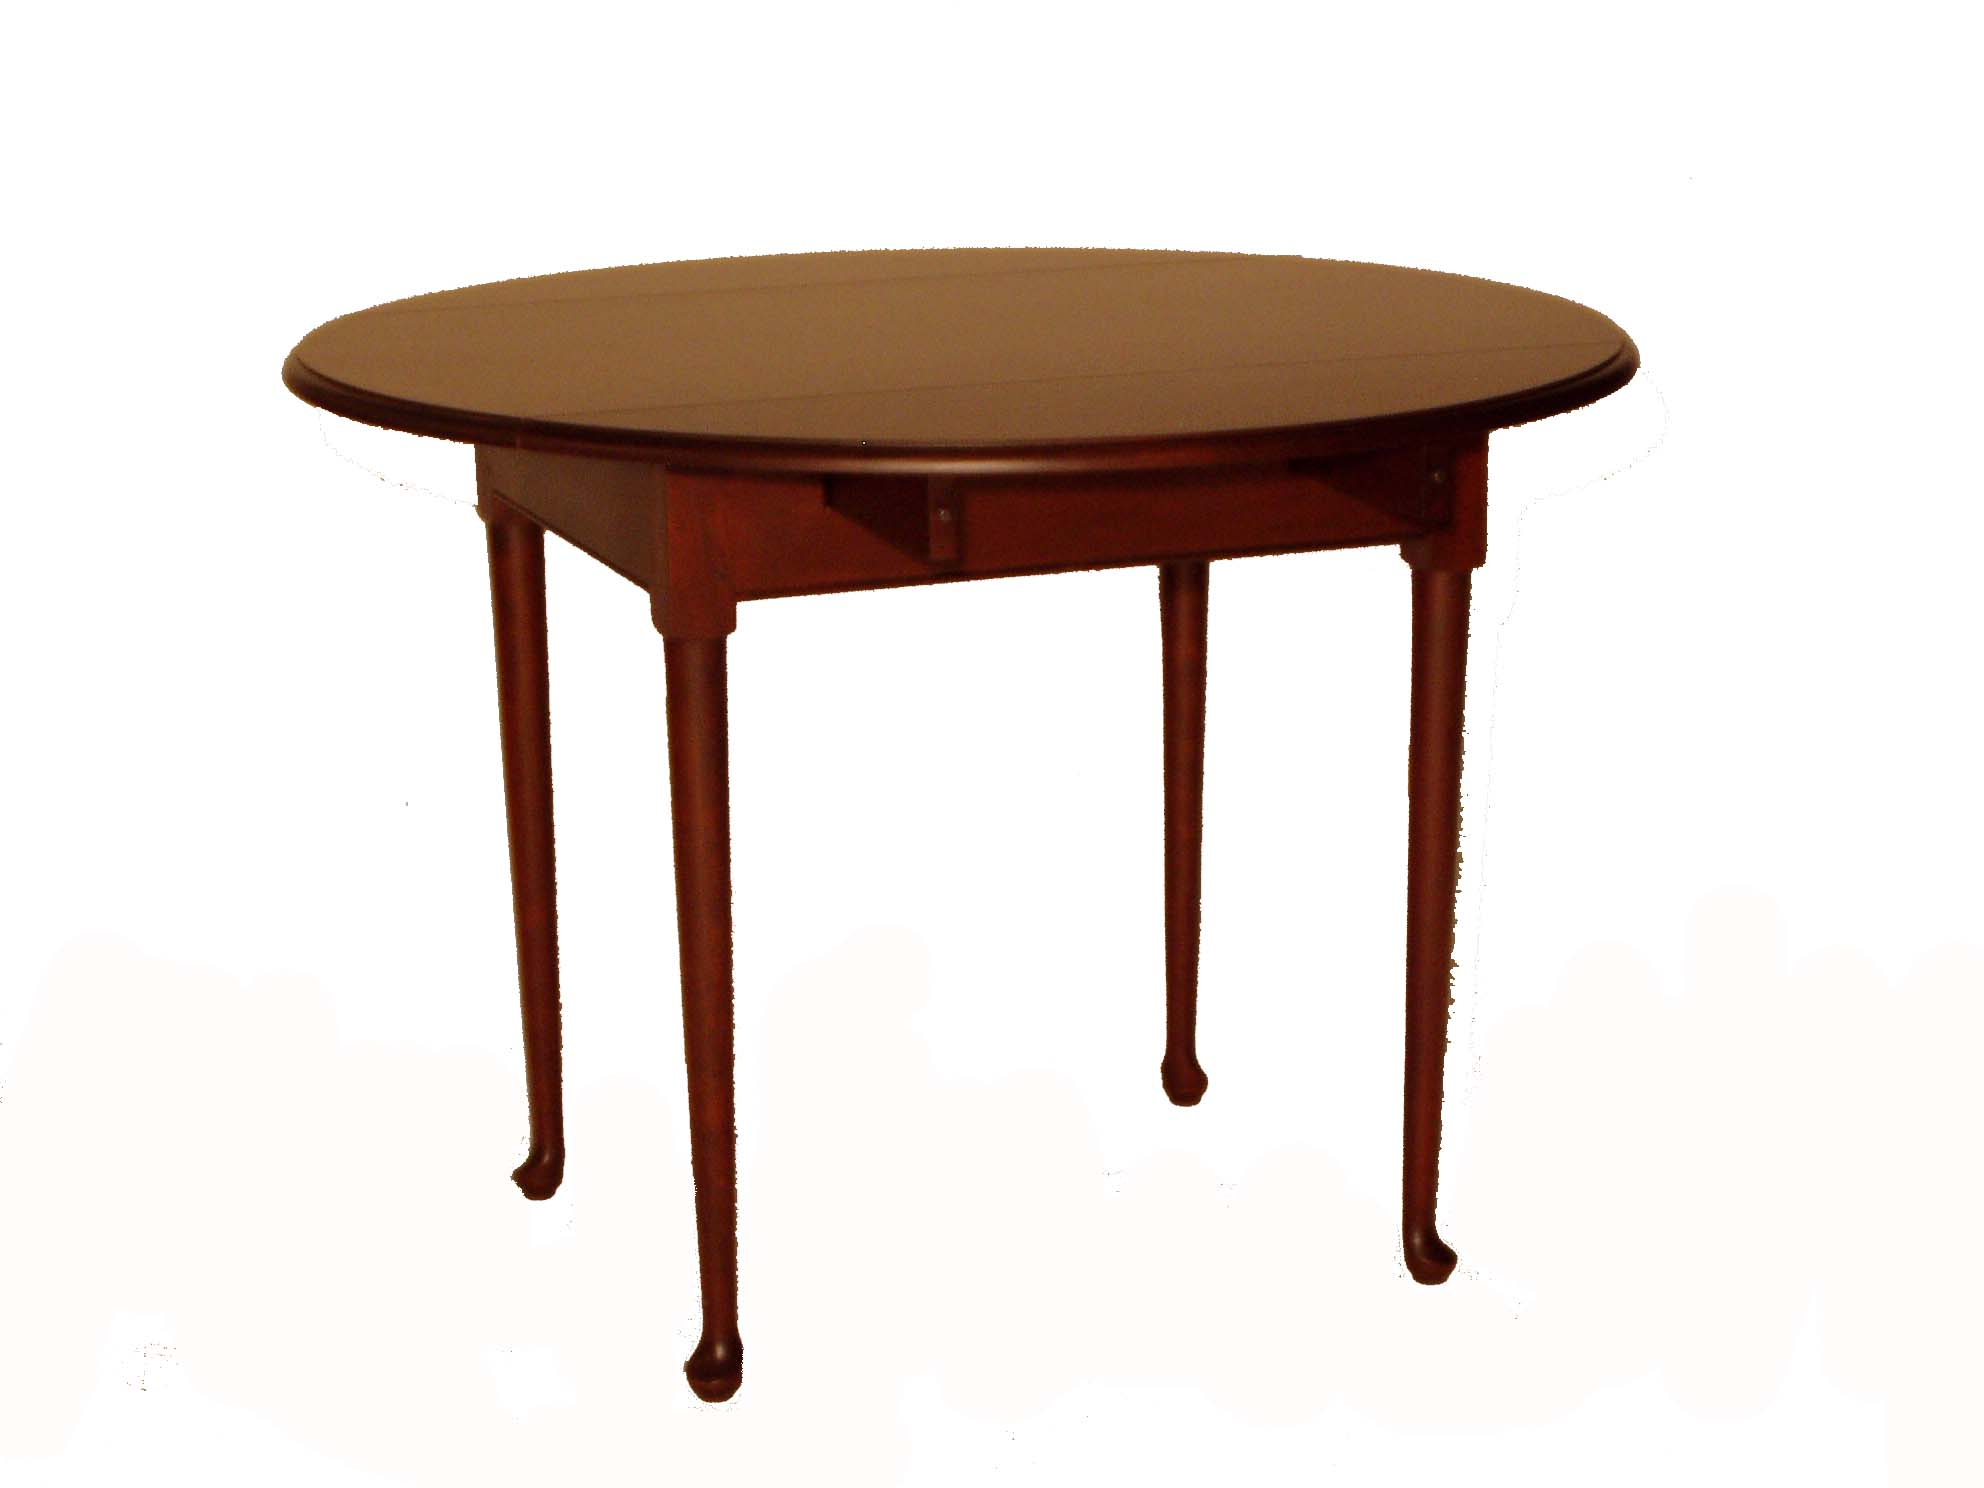 Picture of: Drop Leaf Table ideas